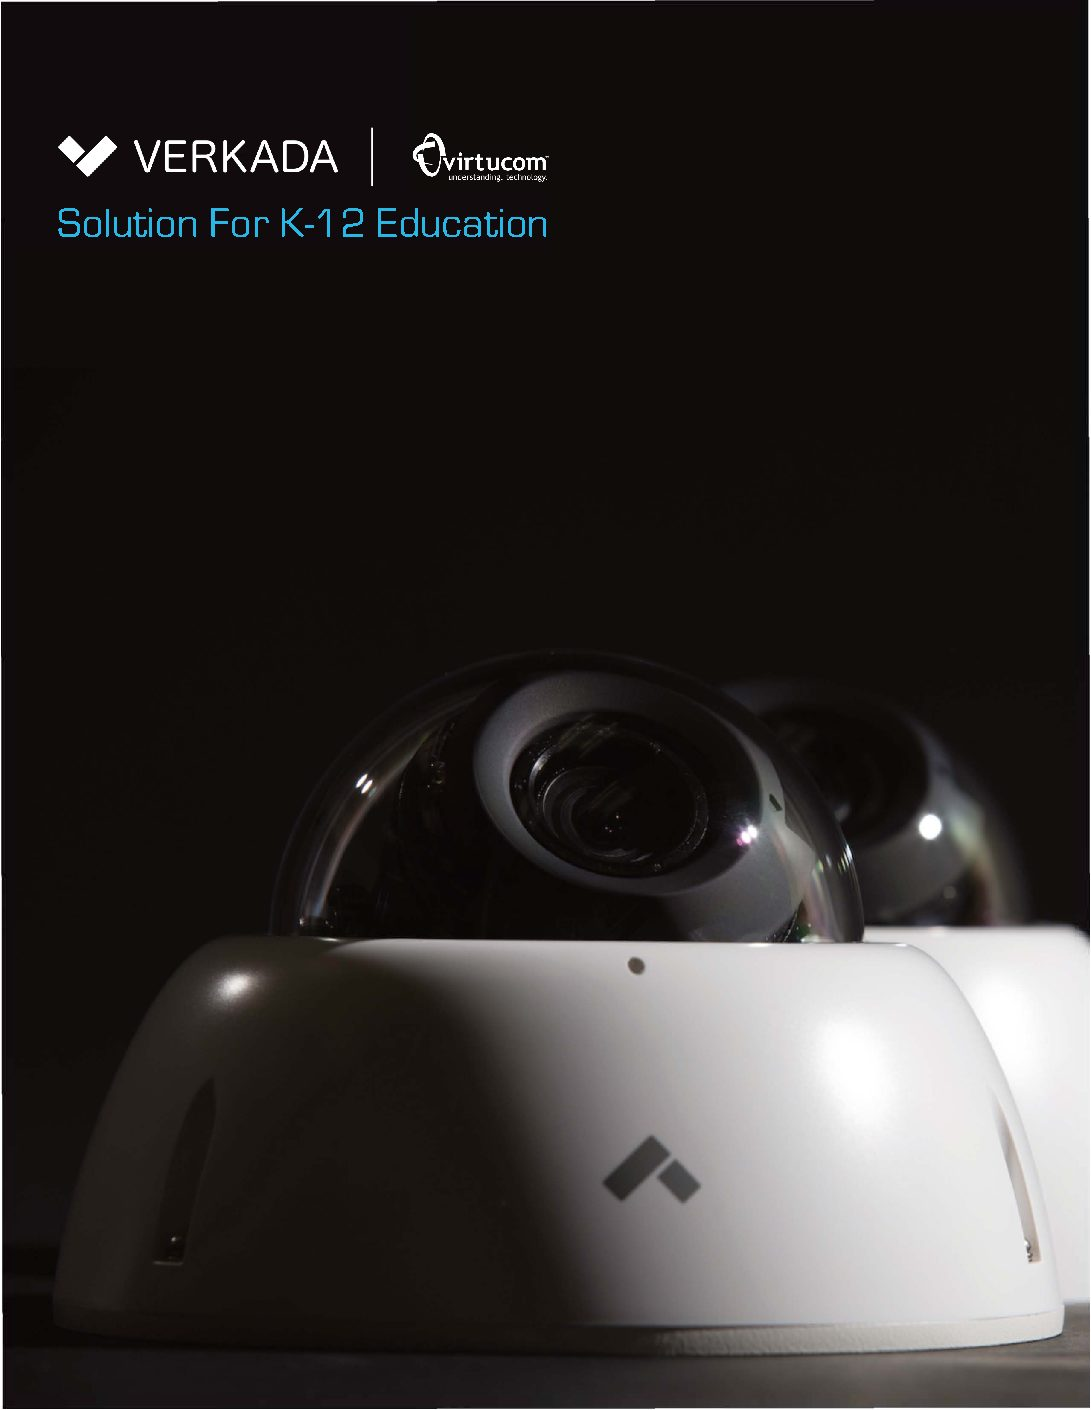 Verkada K12 Security Solution